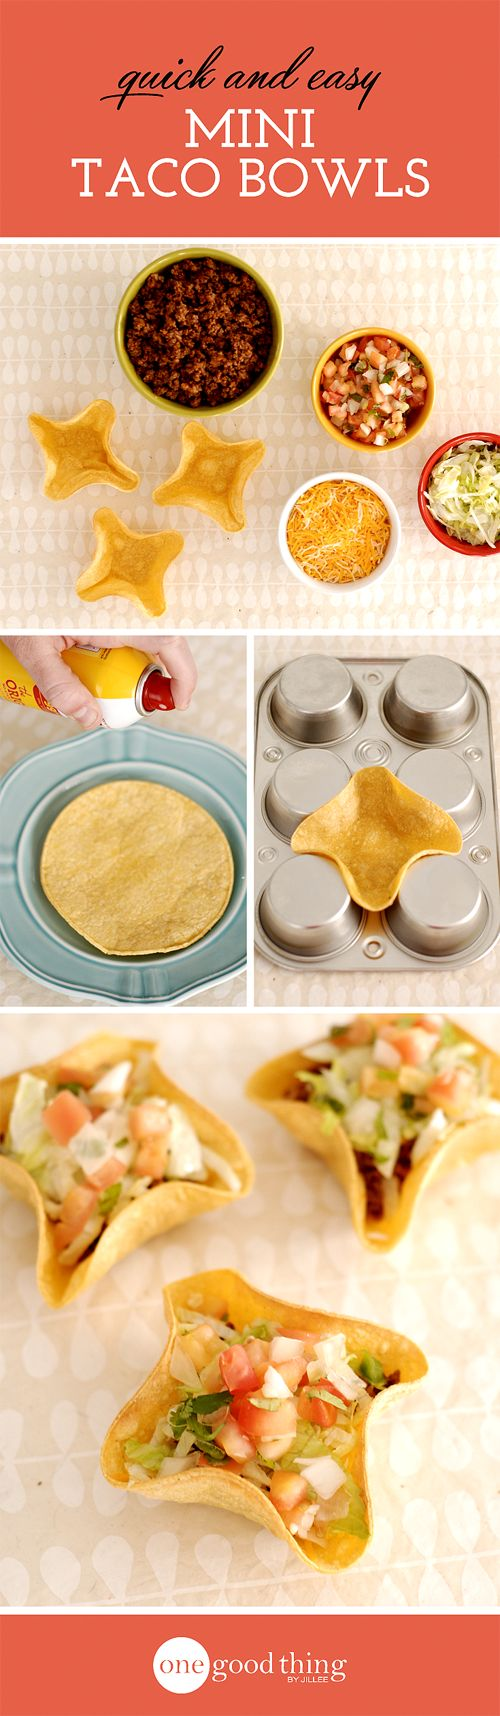 Delicious, adorable taco bowls that the family will love!